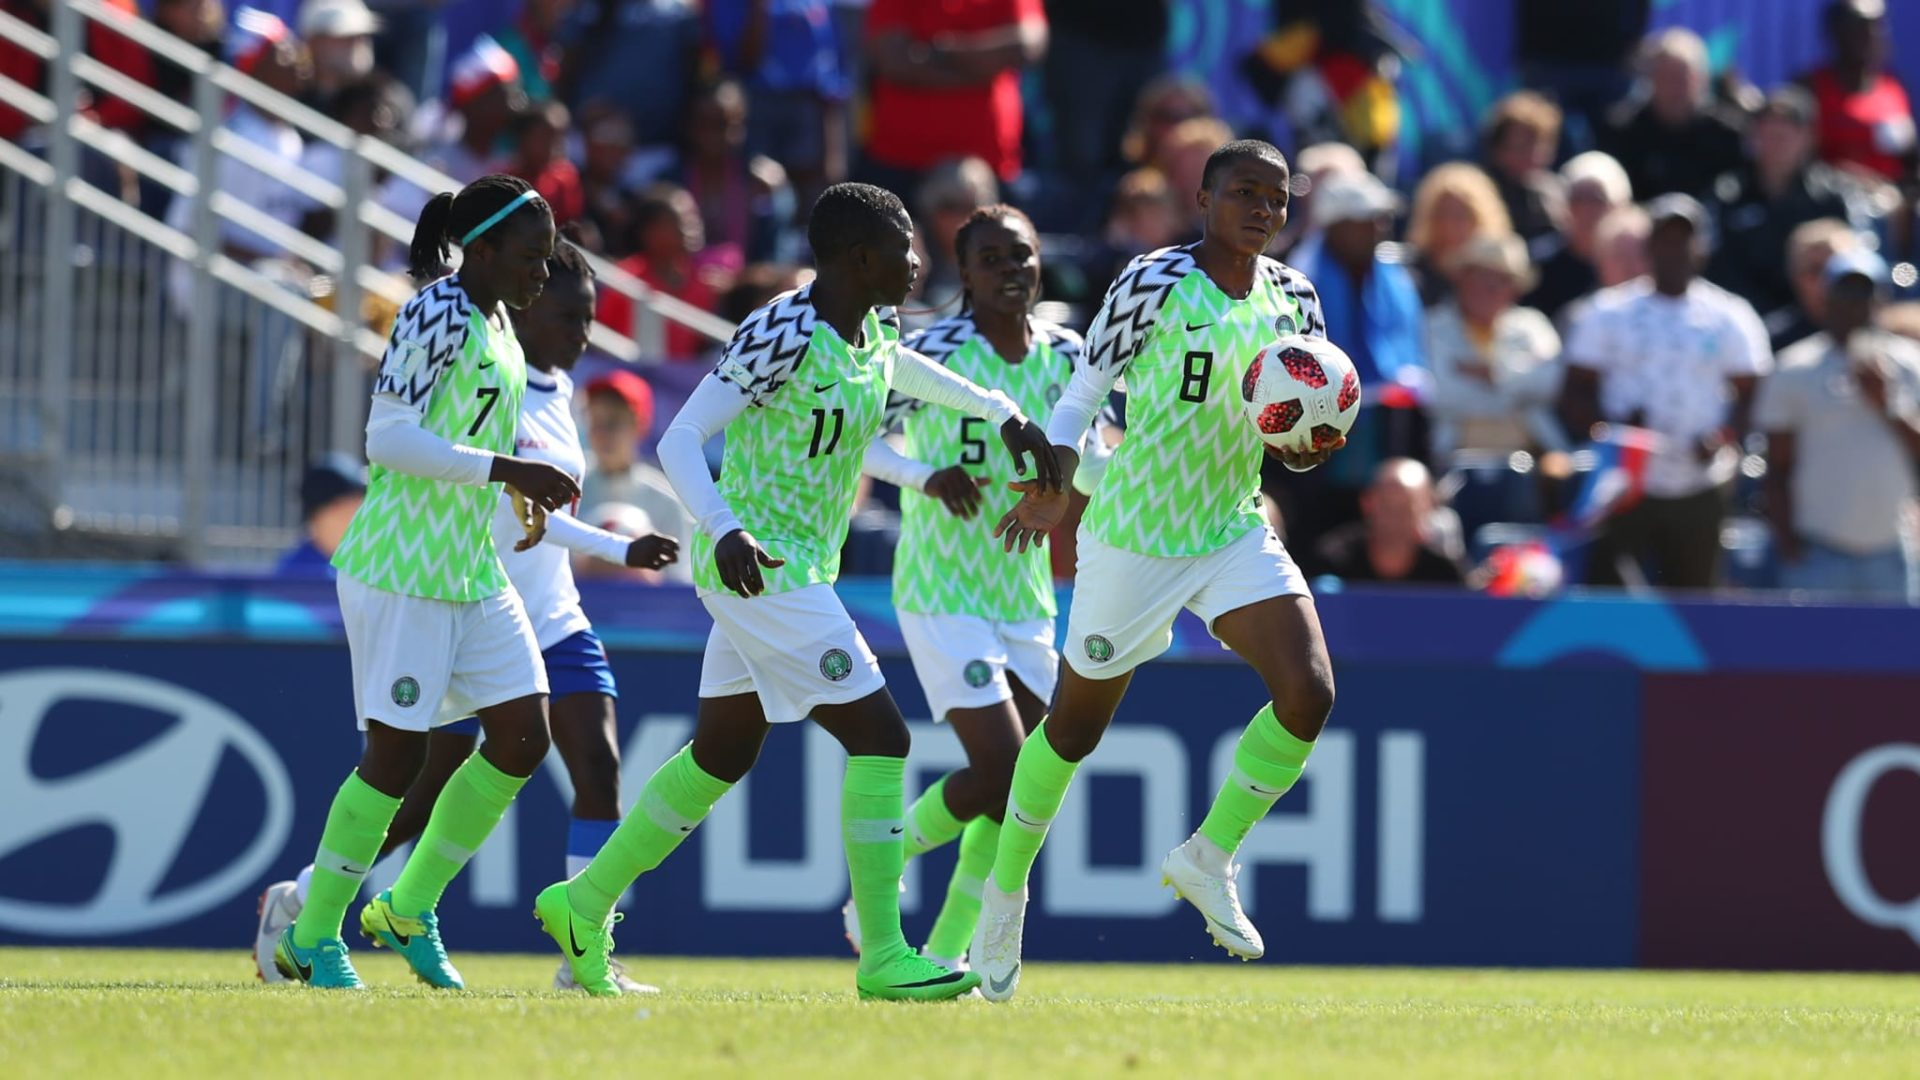 2019 African Games: Nigeria's Falconets to face South Africa, Cameroon